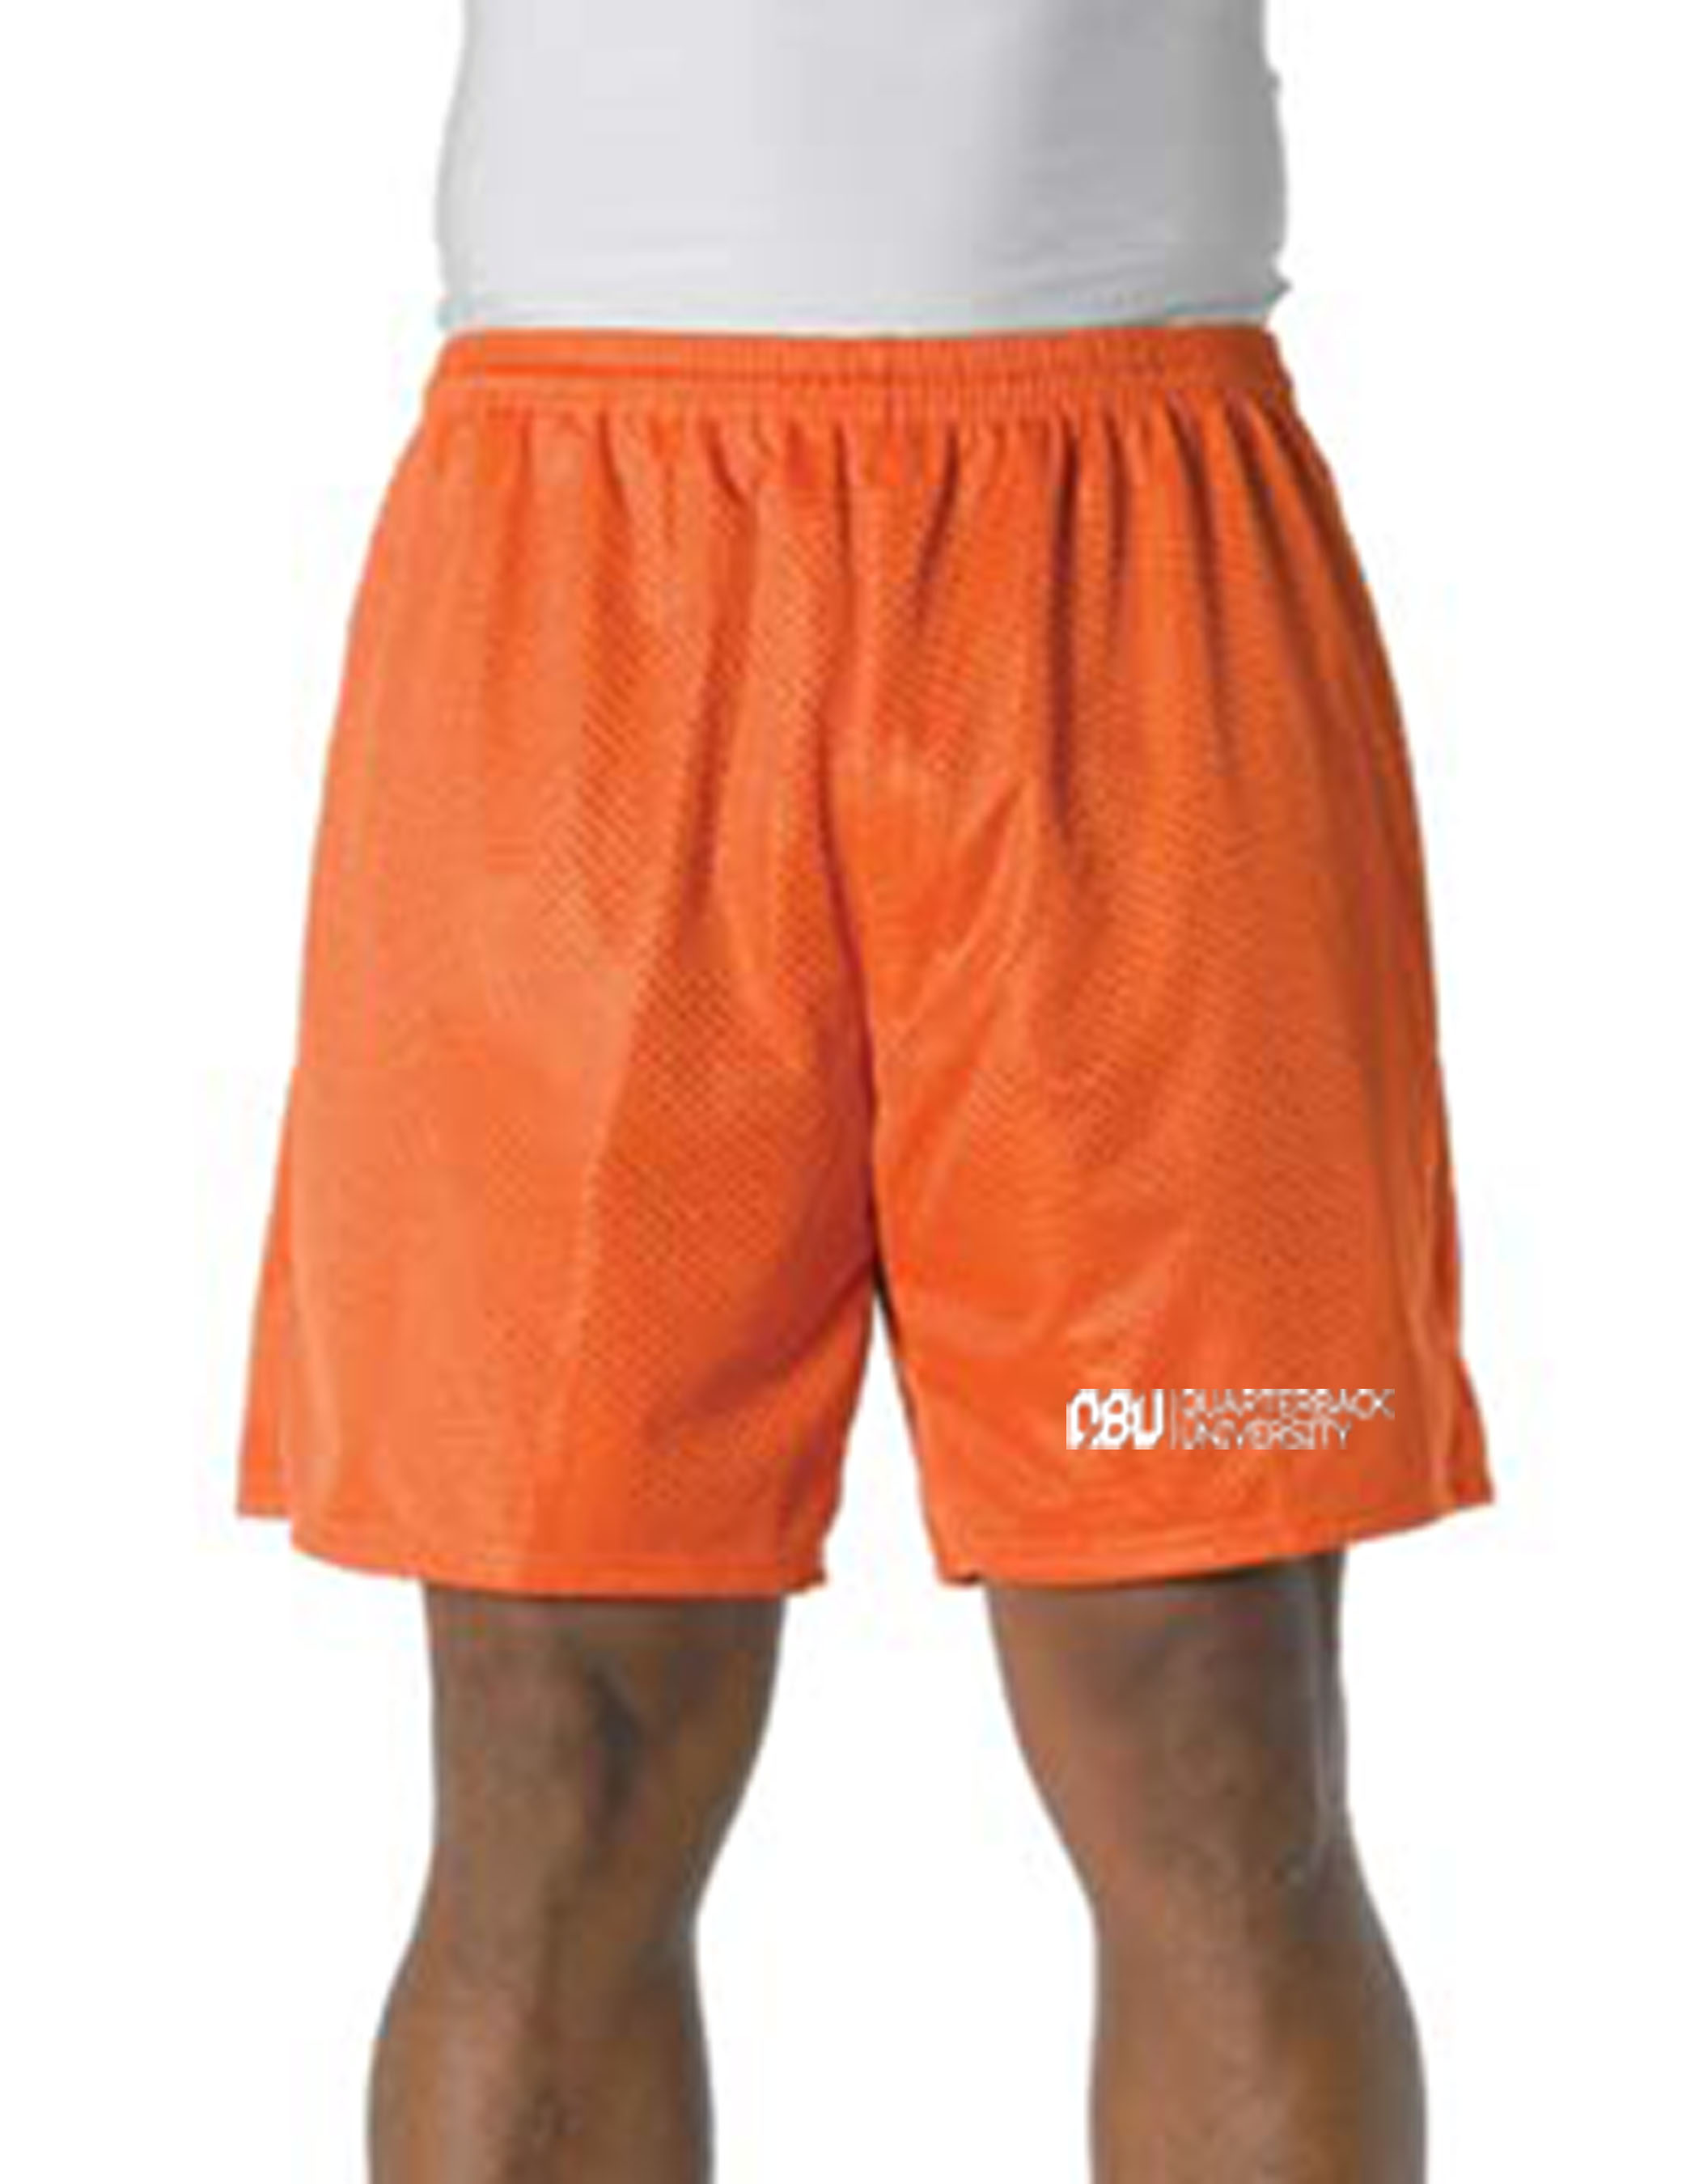 Quarterback University Shorts Orange